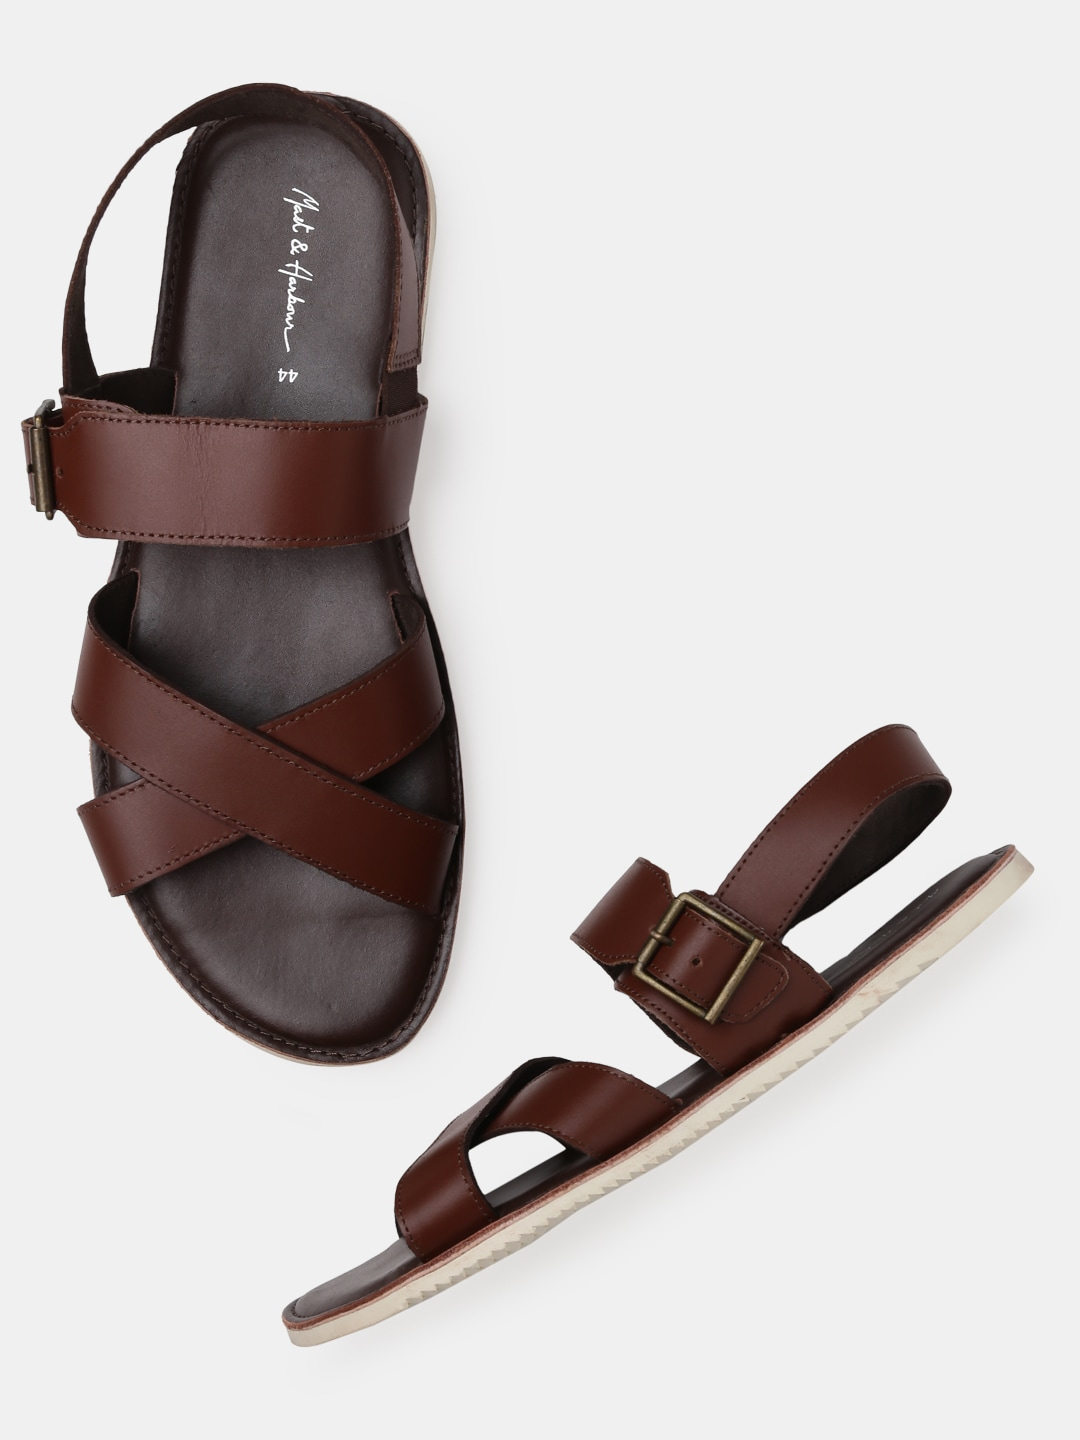 53e4e50157d4 Sandals - Buy Sandals Online for Men   Women in India